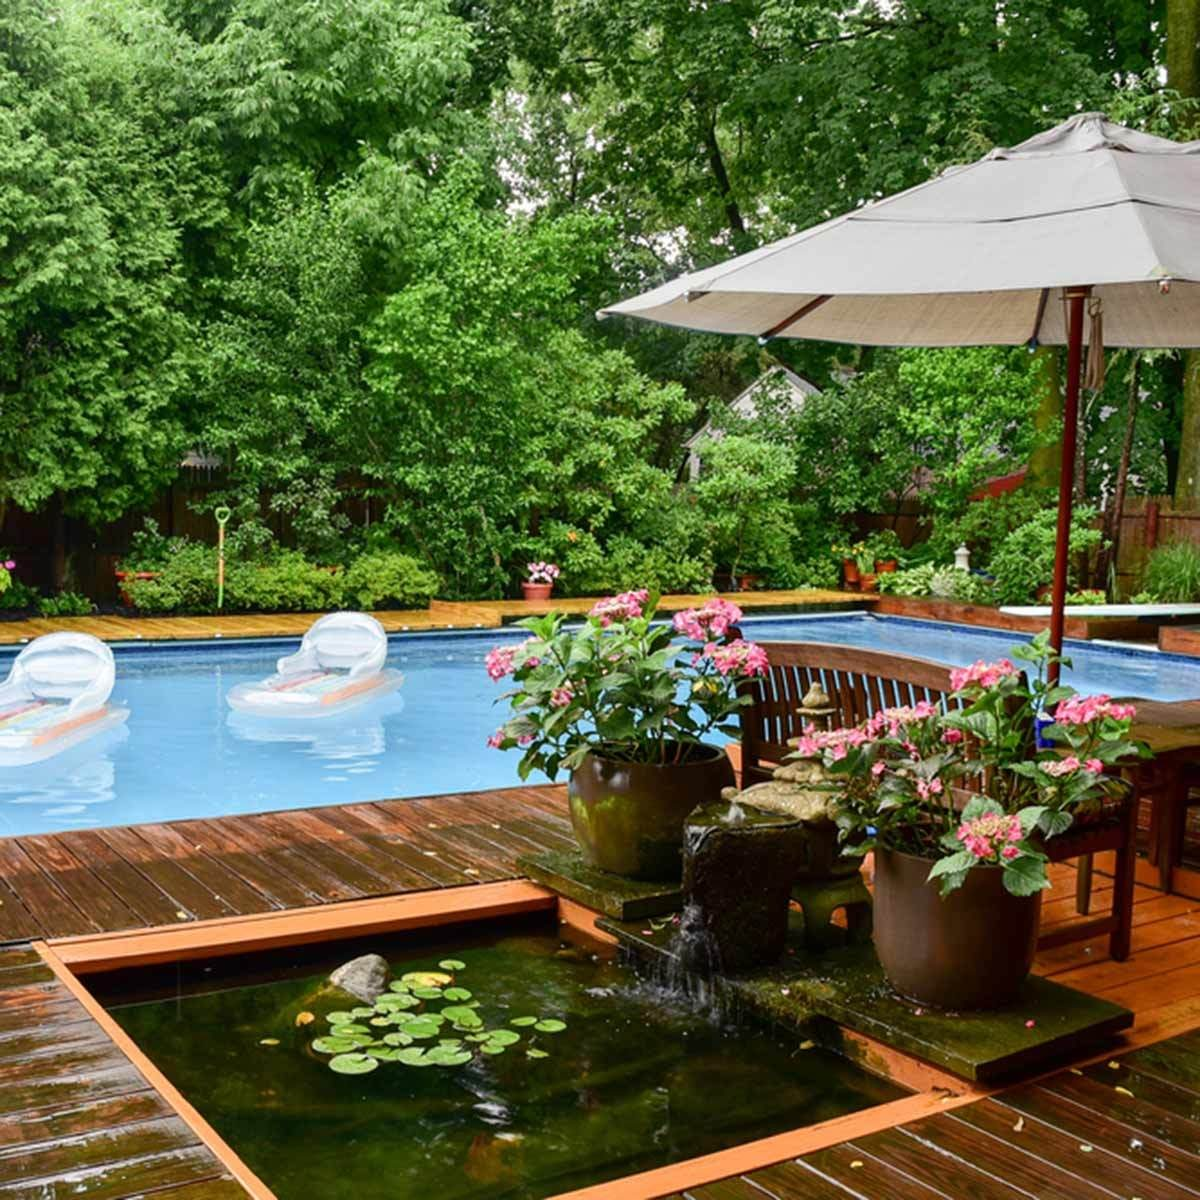 10 Best Backyard Pool Ideas And Designs Images The Family Handyman